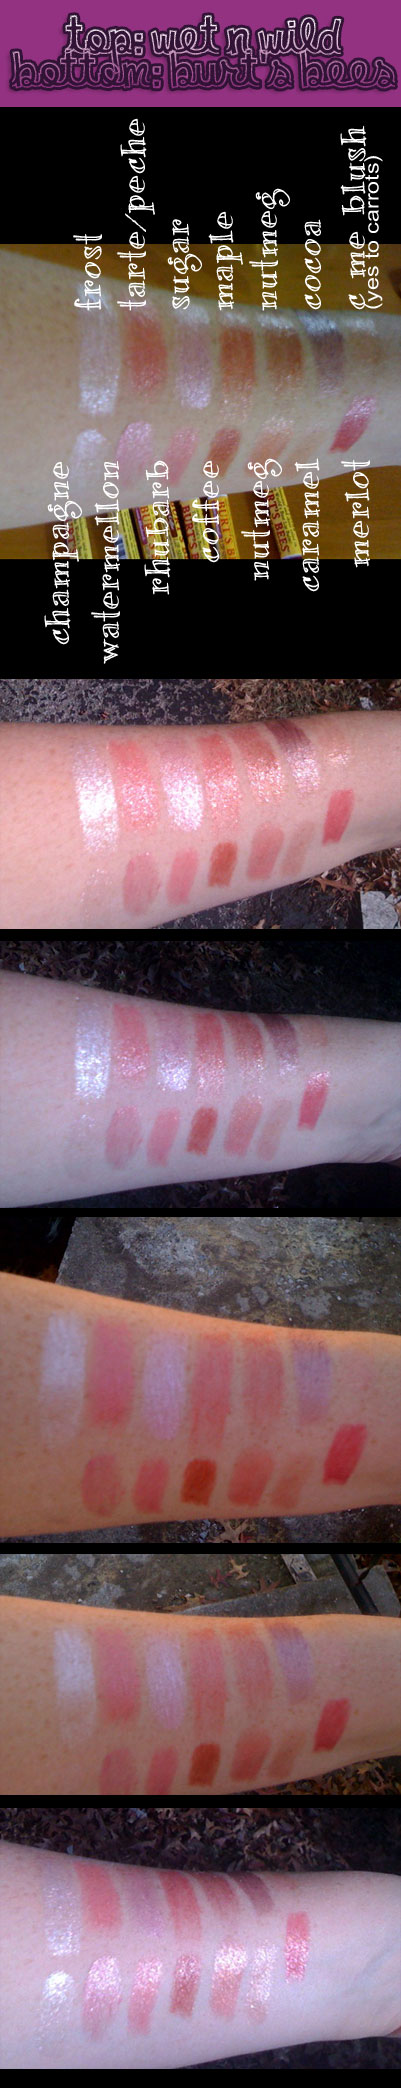 burts bees vs wet n wild lip shimmers swatches on my arm